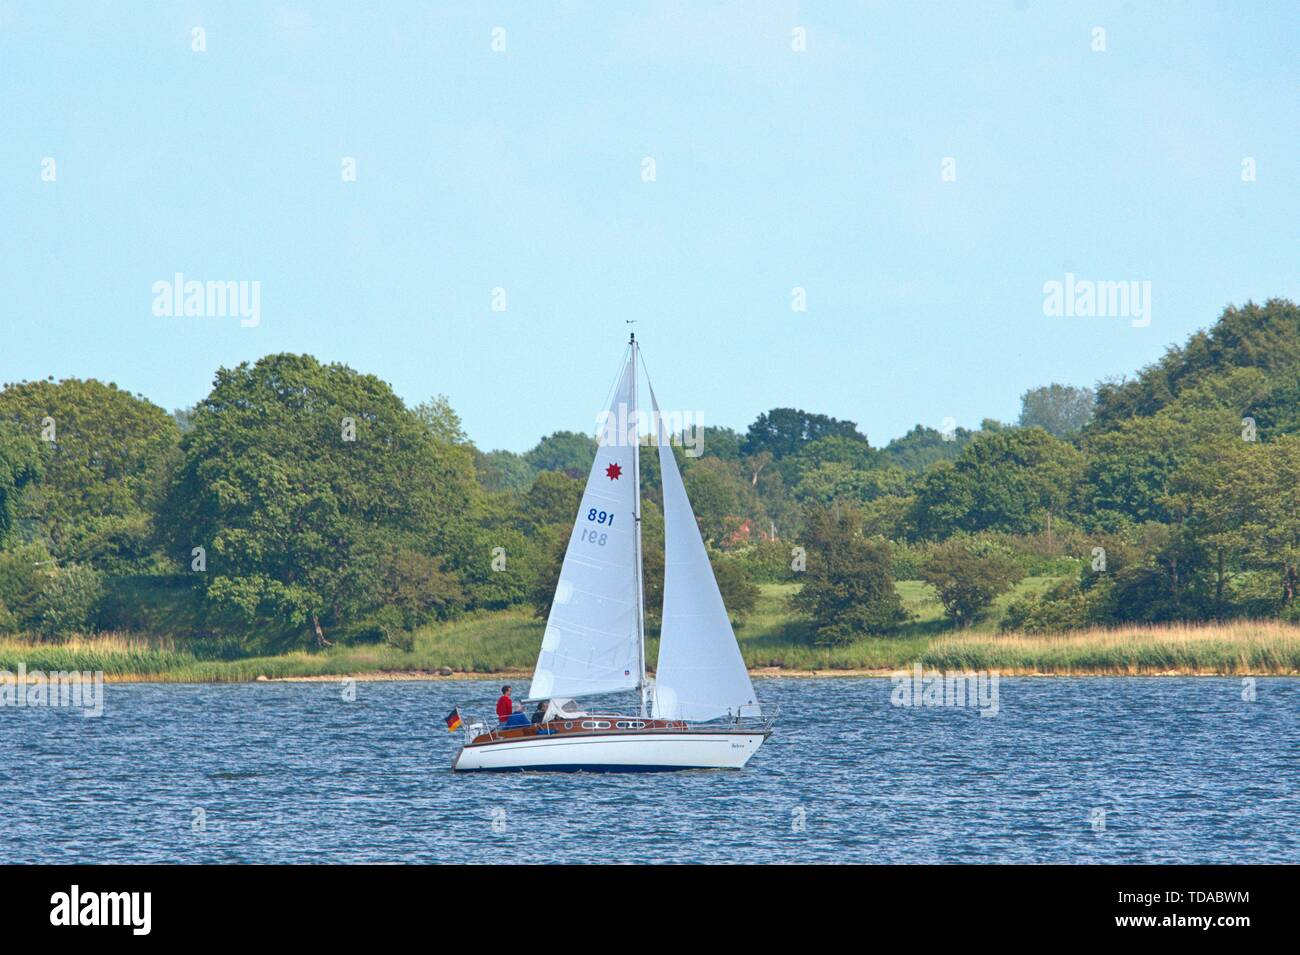 Schleswig, Deutschland. 09th June, 2019. 09.06.2019, the Schlei in Schleswig. The Ostseefjord, a Baltic Sea inlet filled with brackish water, is a popular sailing area. A sailing boat on the water, in the background are Stexwig and Fahrdorf.   usage worldwide Credit: dpa/Alamy Live News - Stock Image